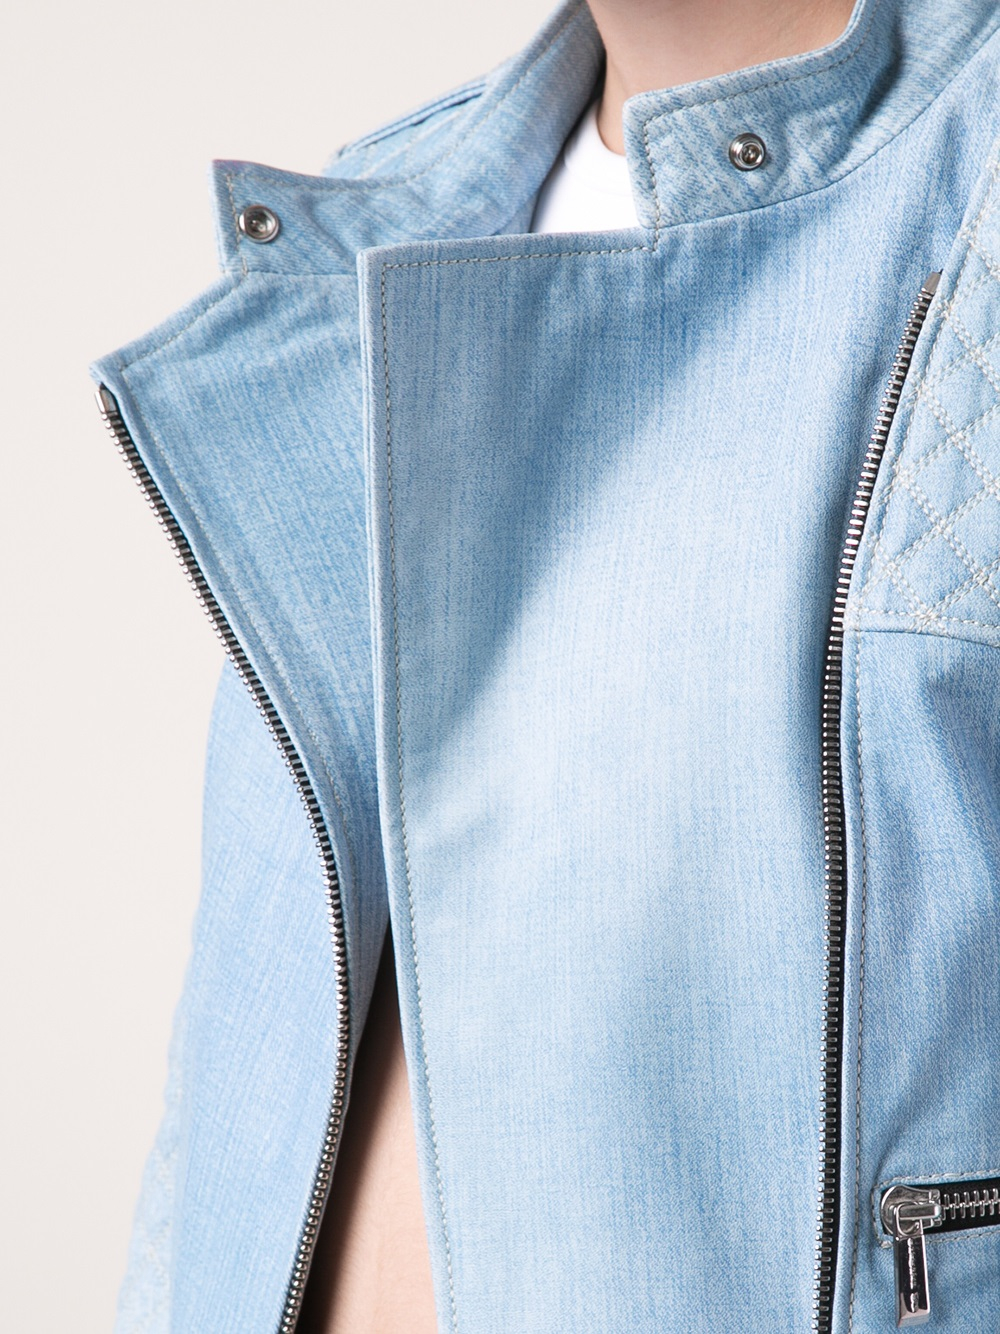 Barbara Bui Quilted Denim Illusion Jacket In Blue Lyst